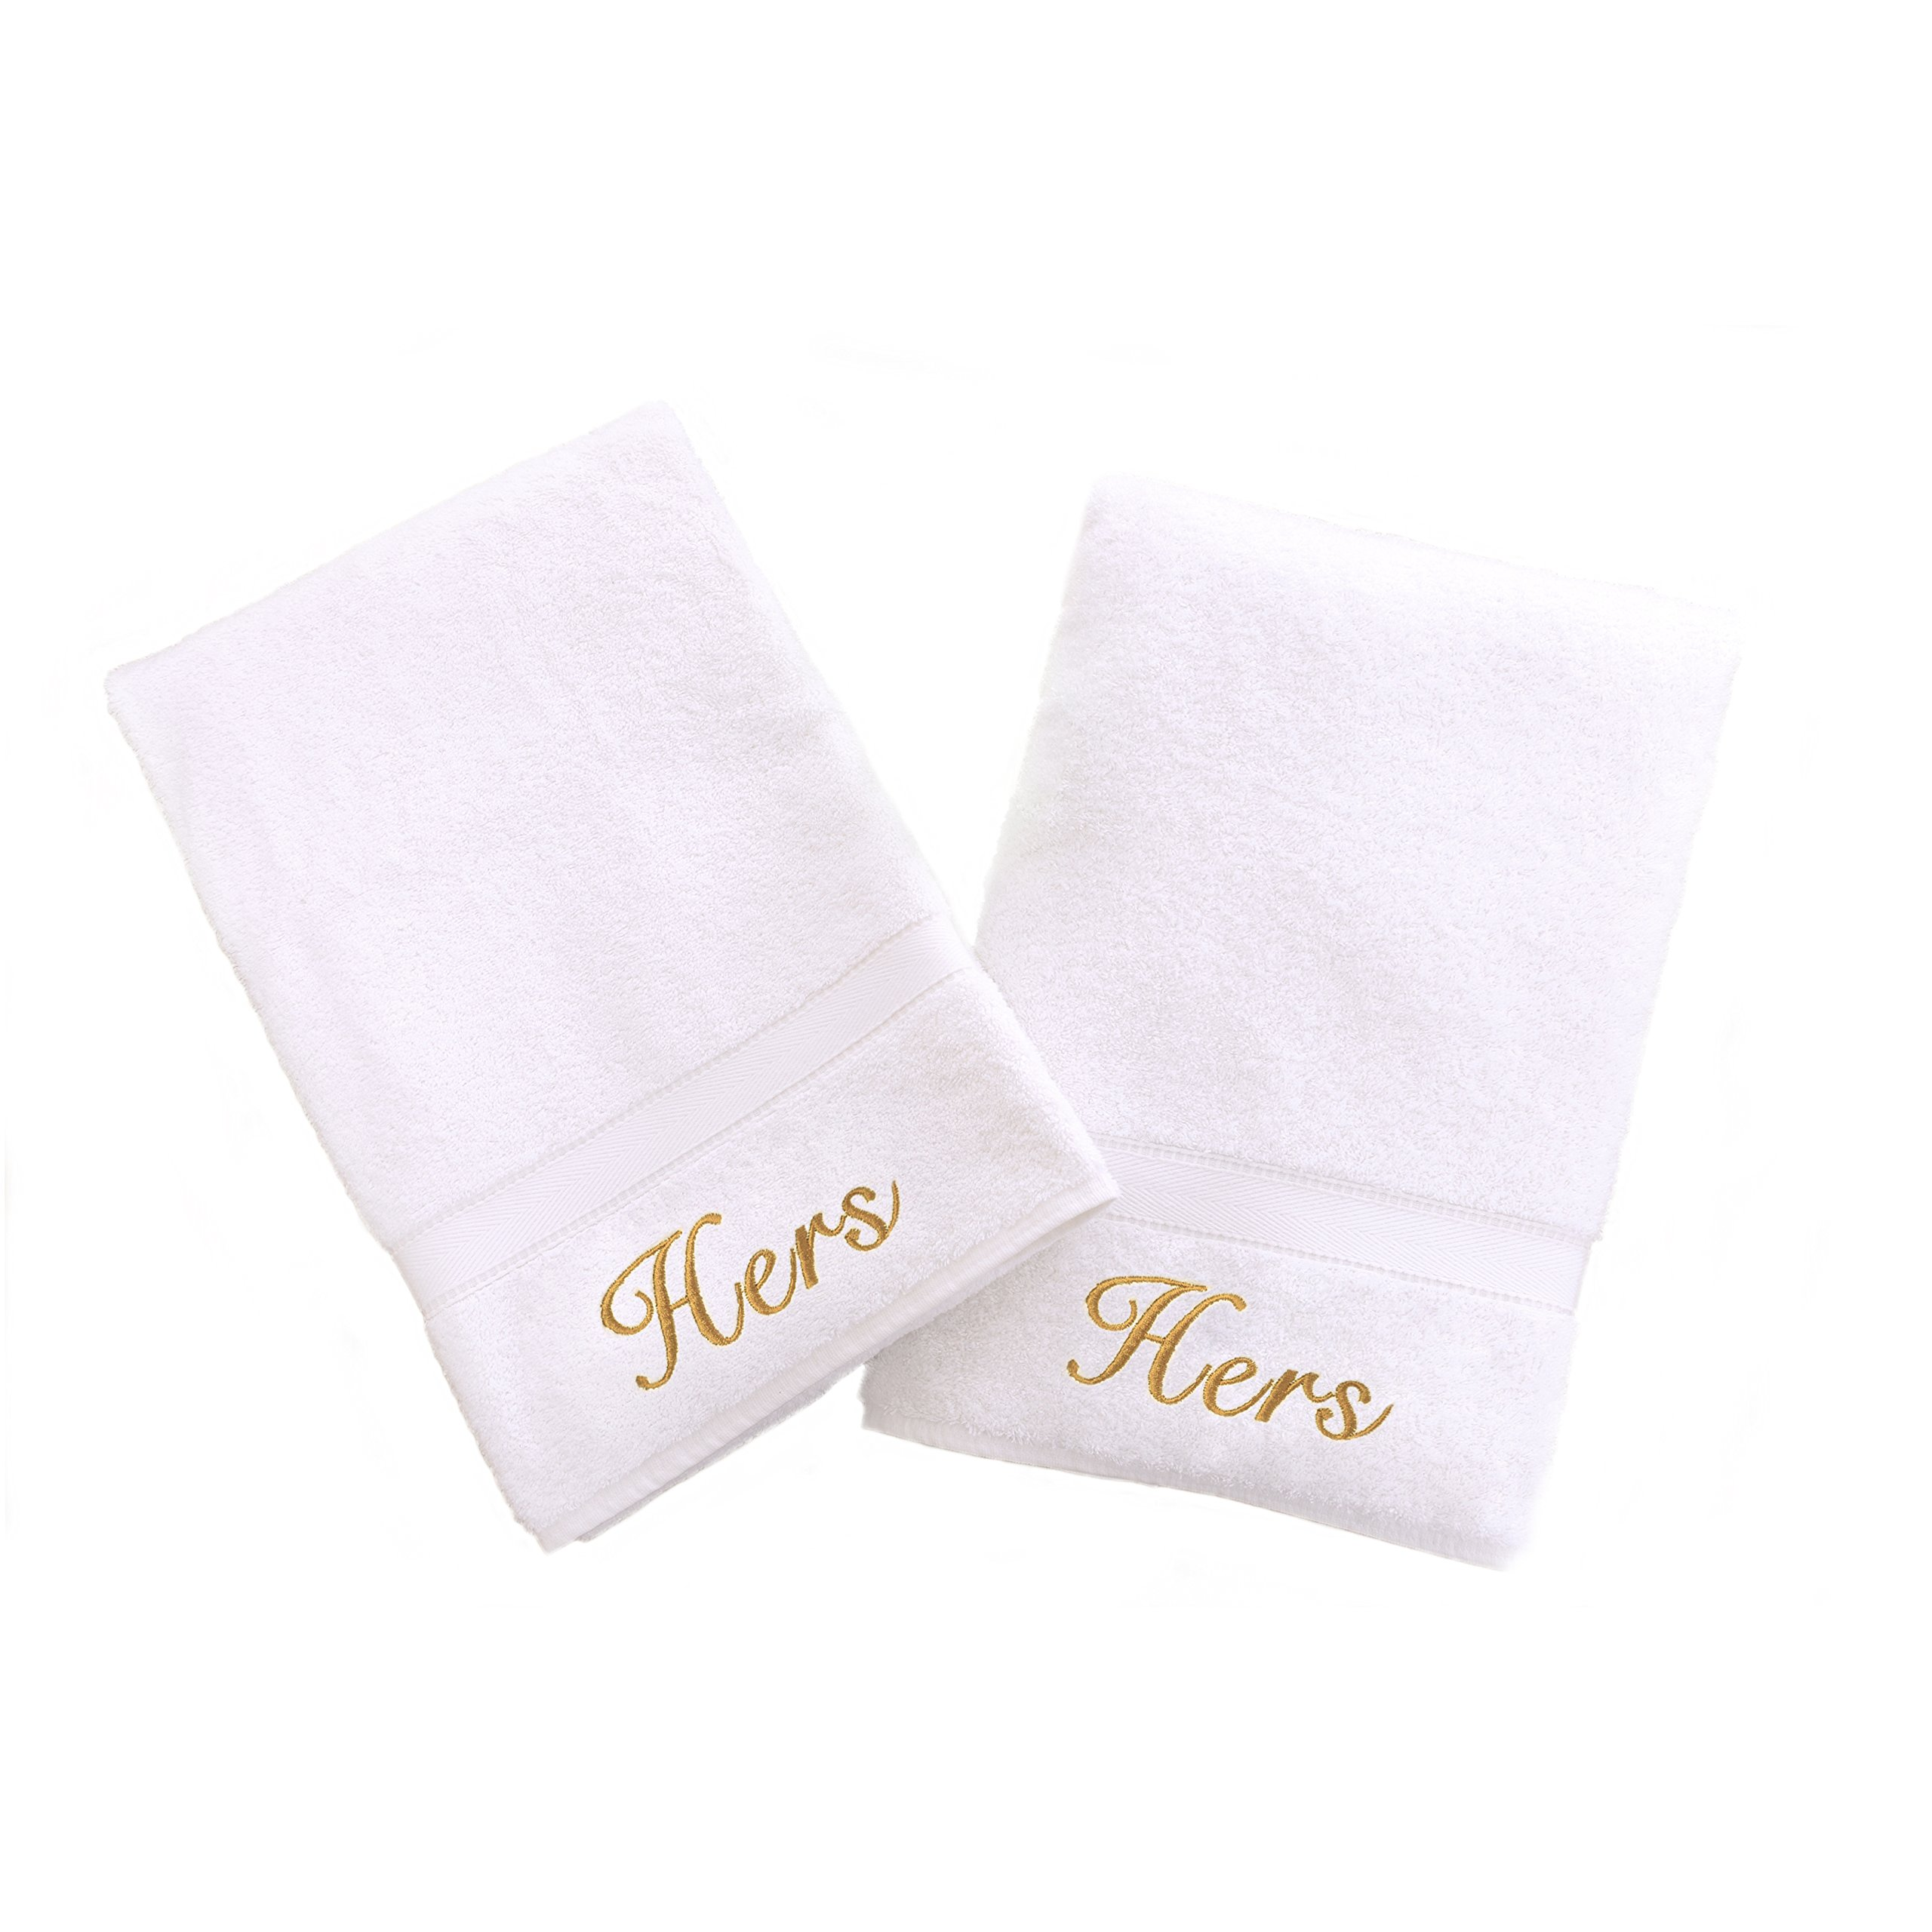 Linum Home Textiles Personalized Hers and Hers Hand Towel, Set of 2